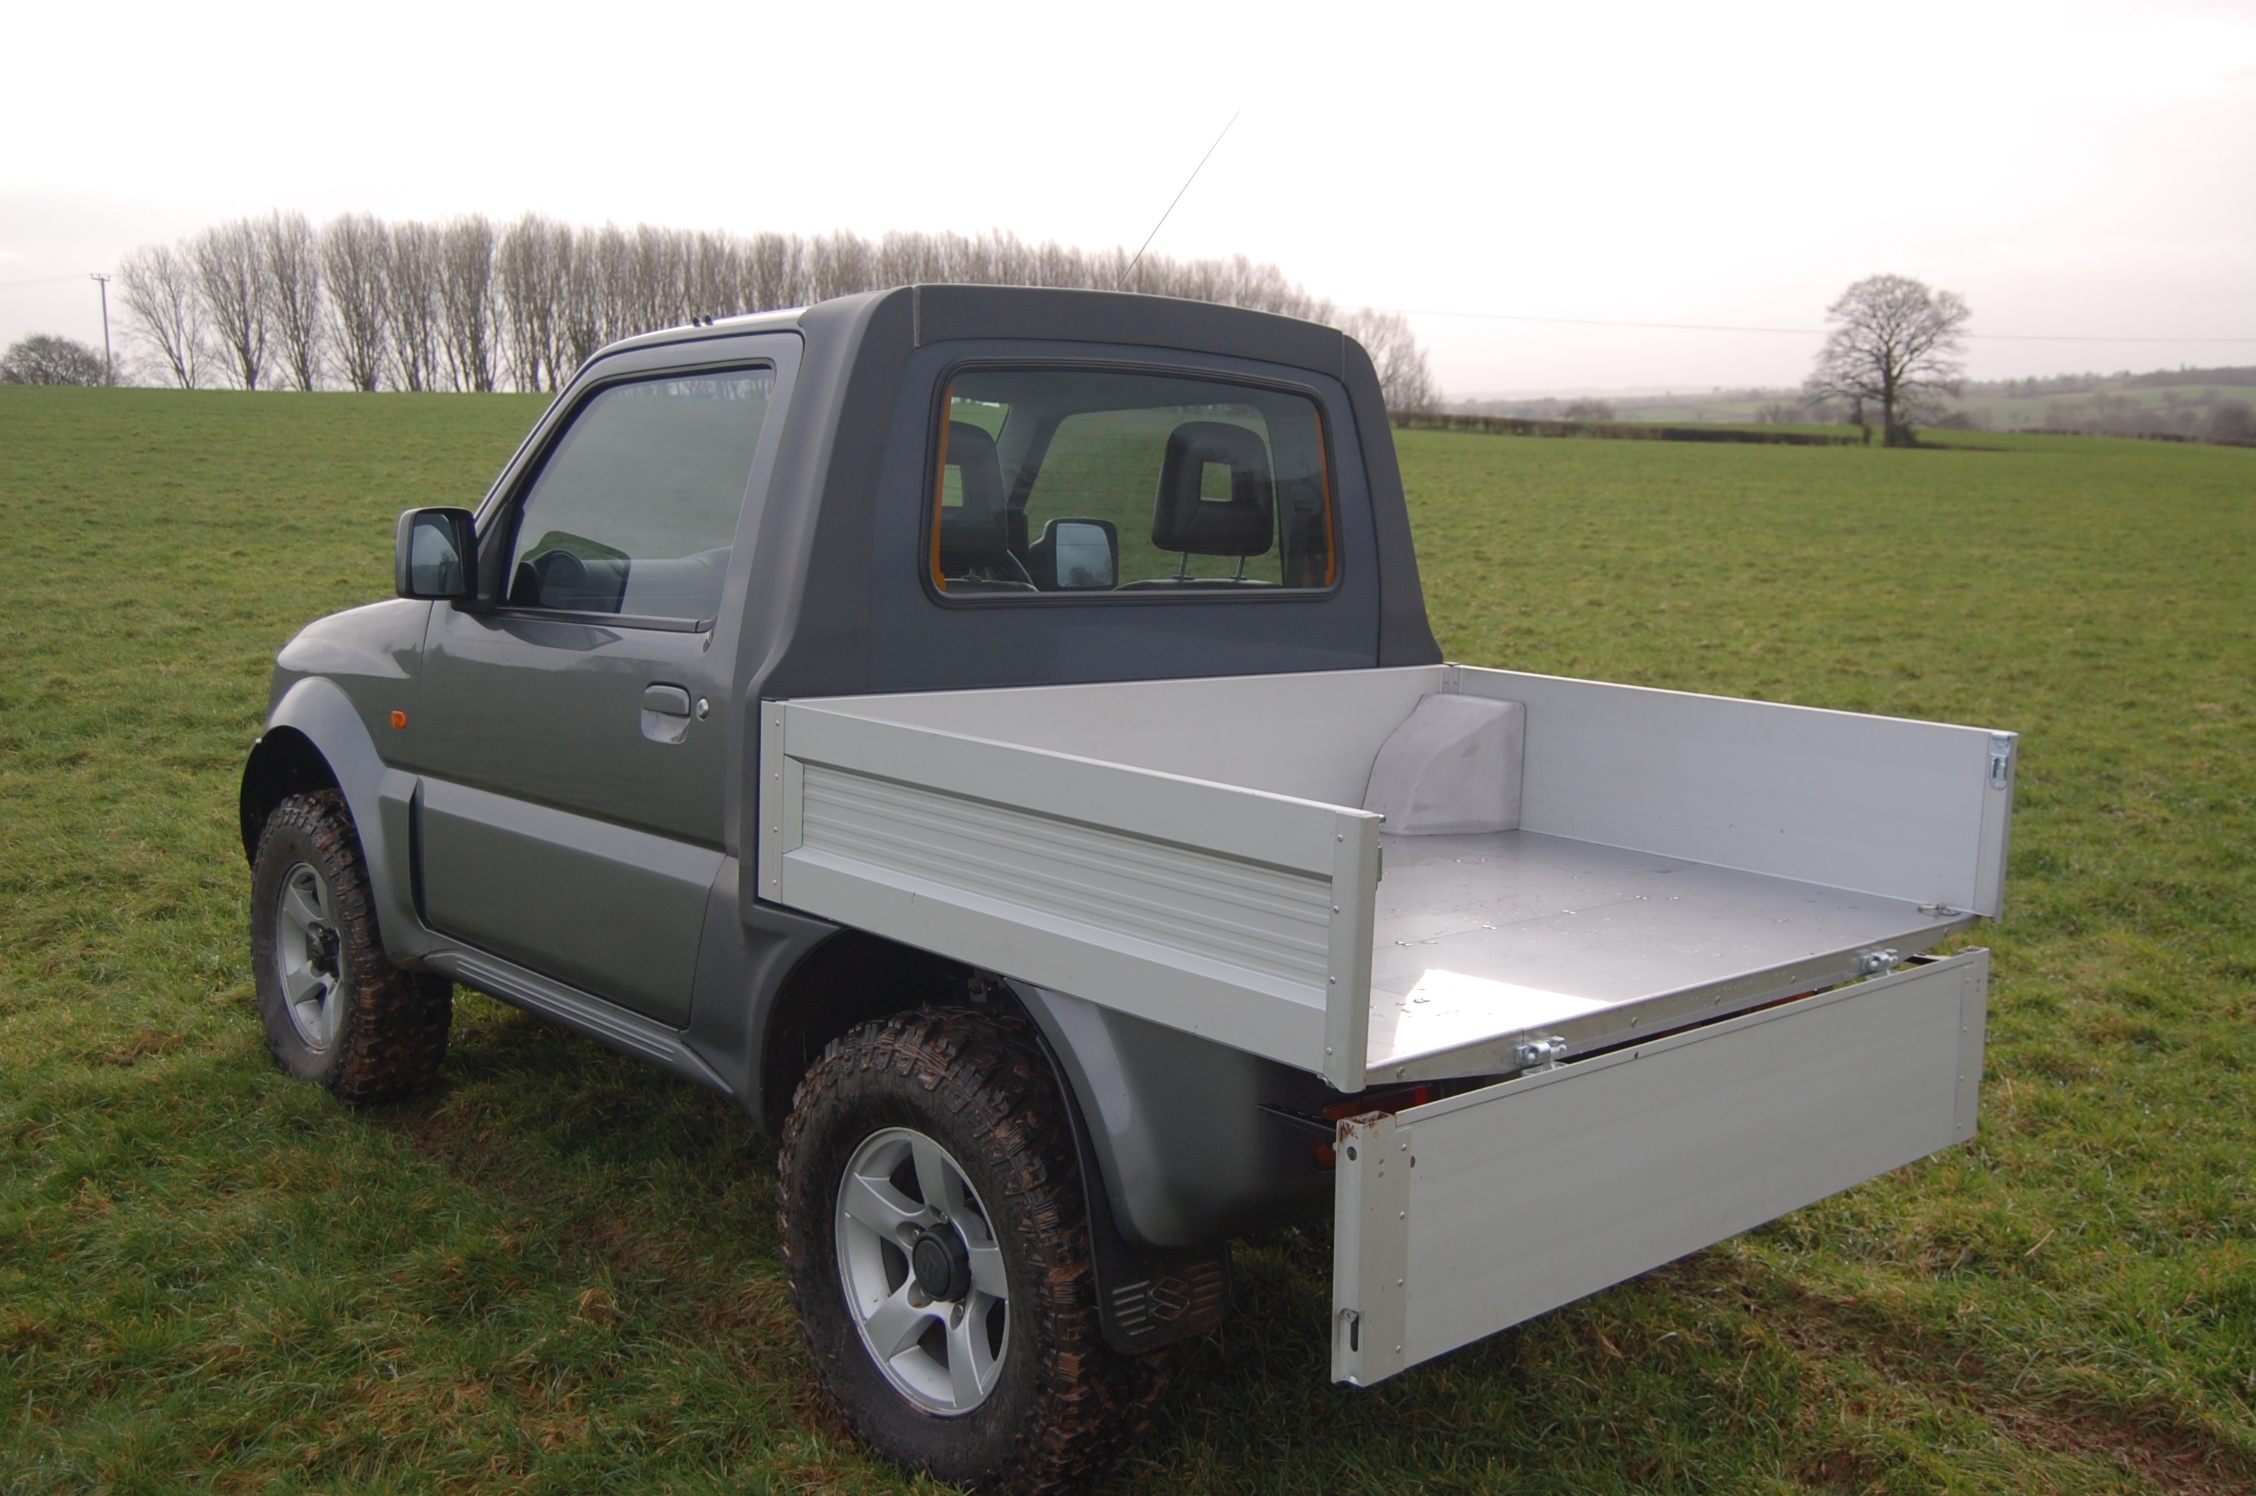 Suzuki Jimny Pickup rear bed